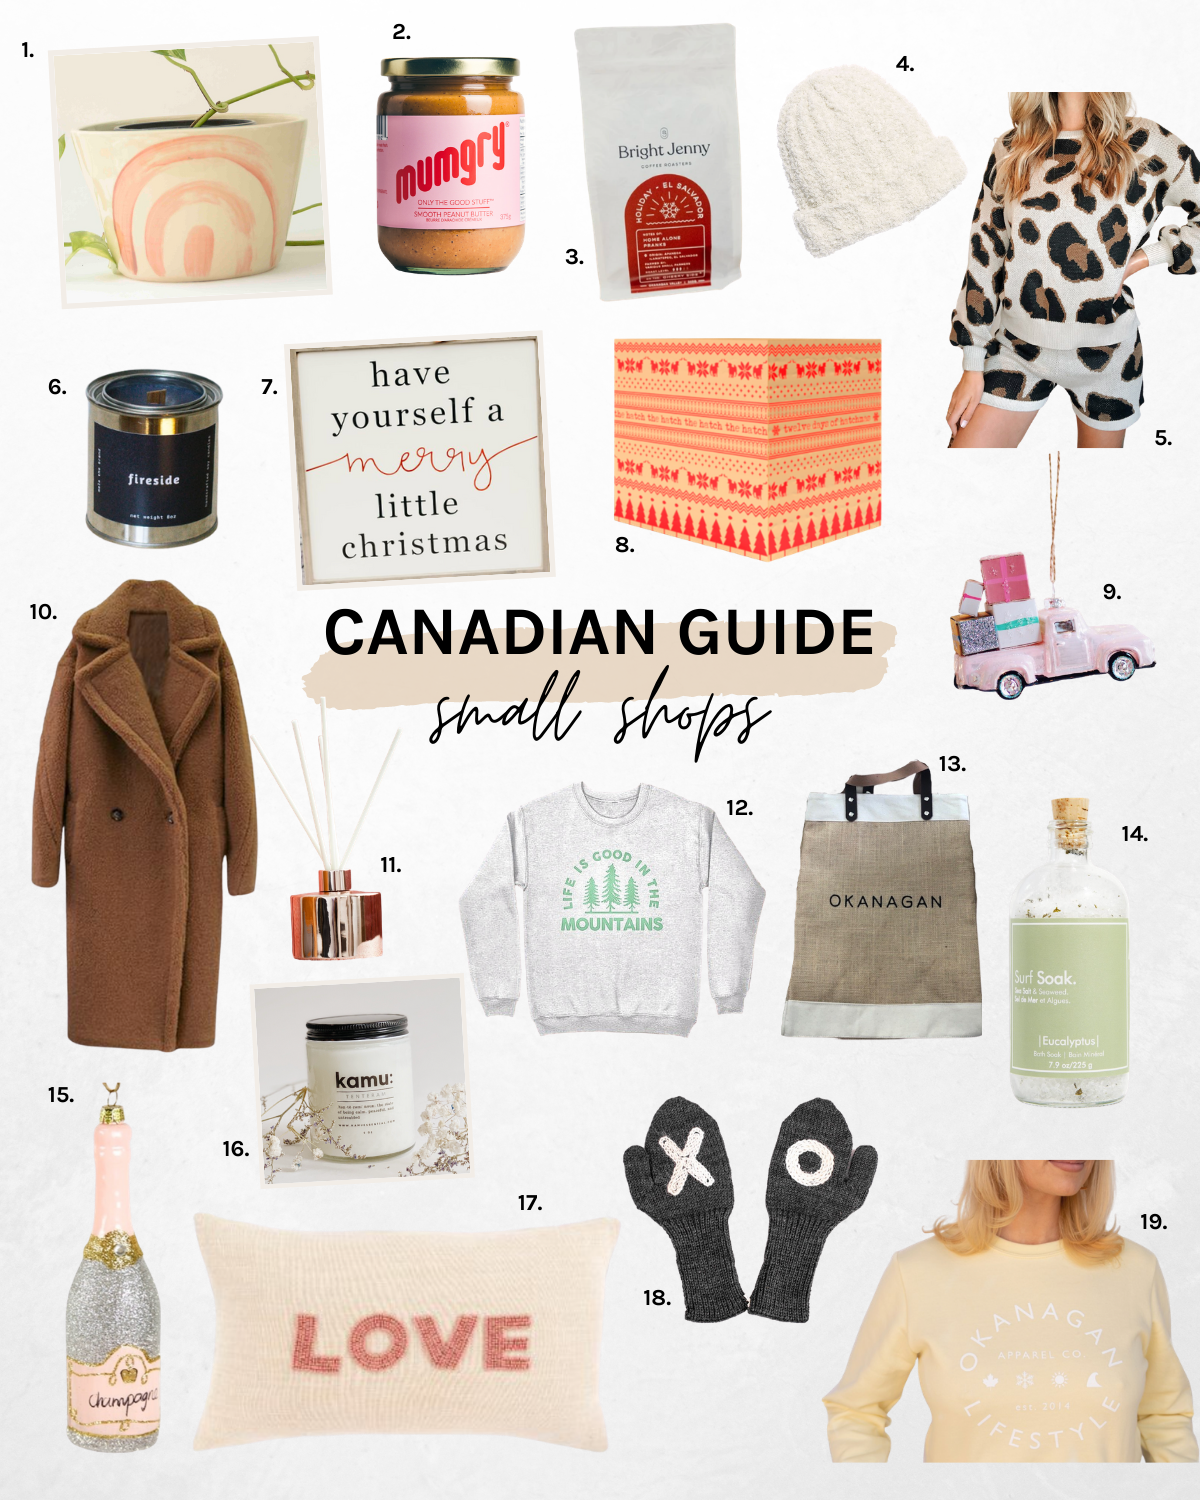 Canadian small shop gift ideas